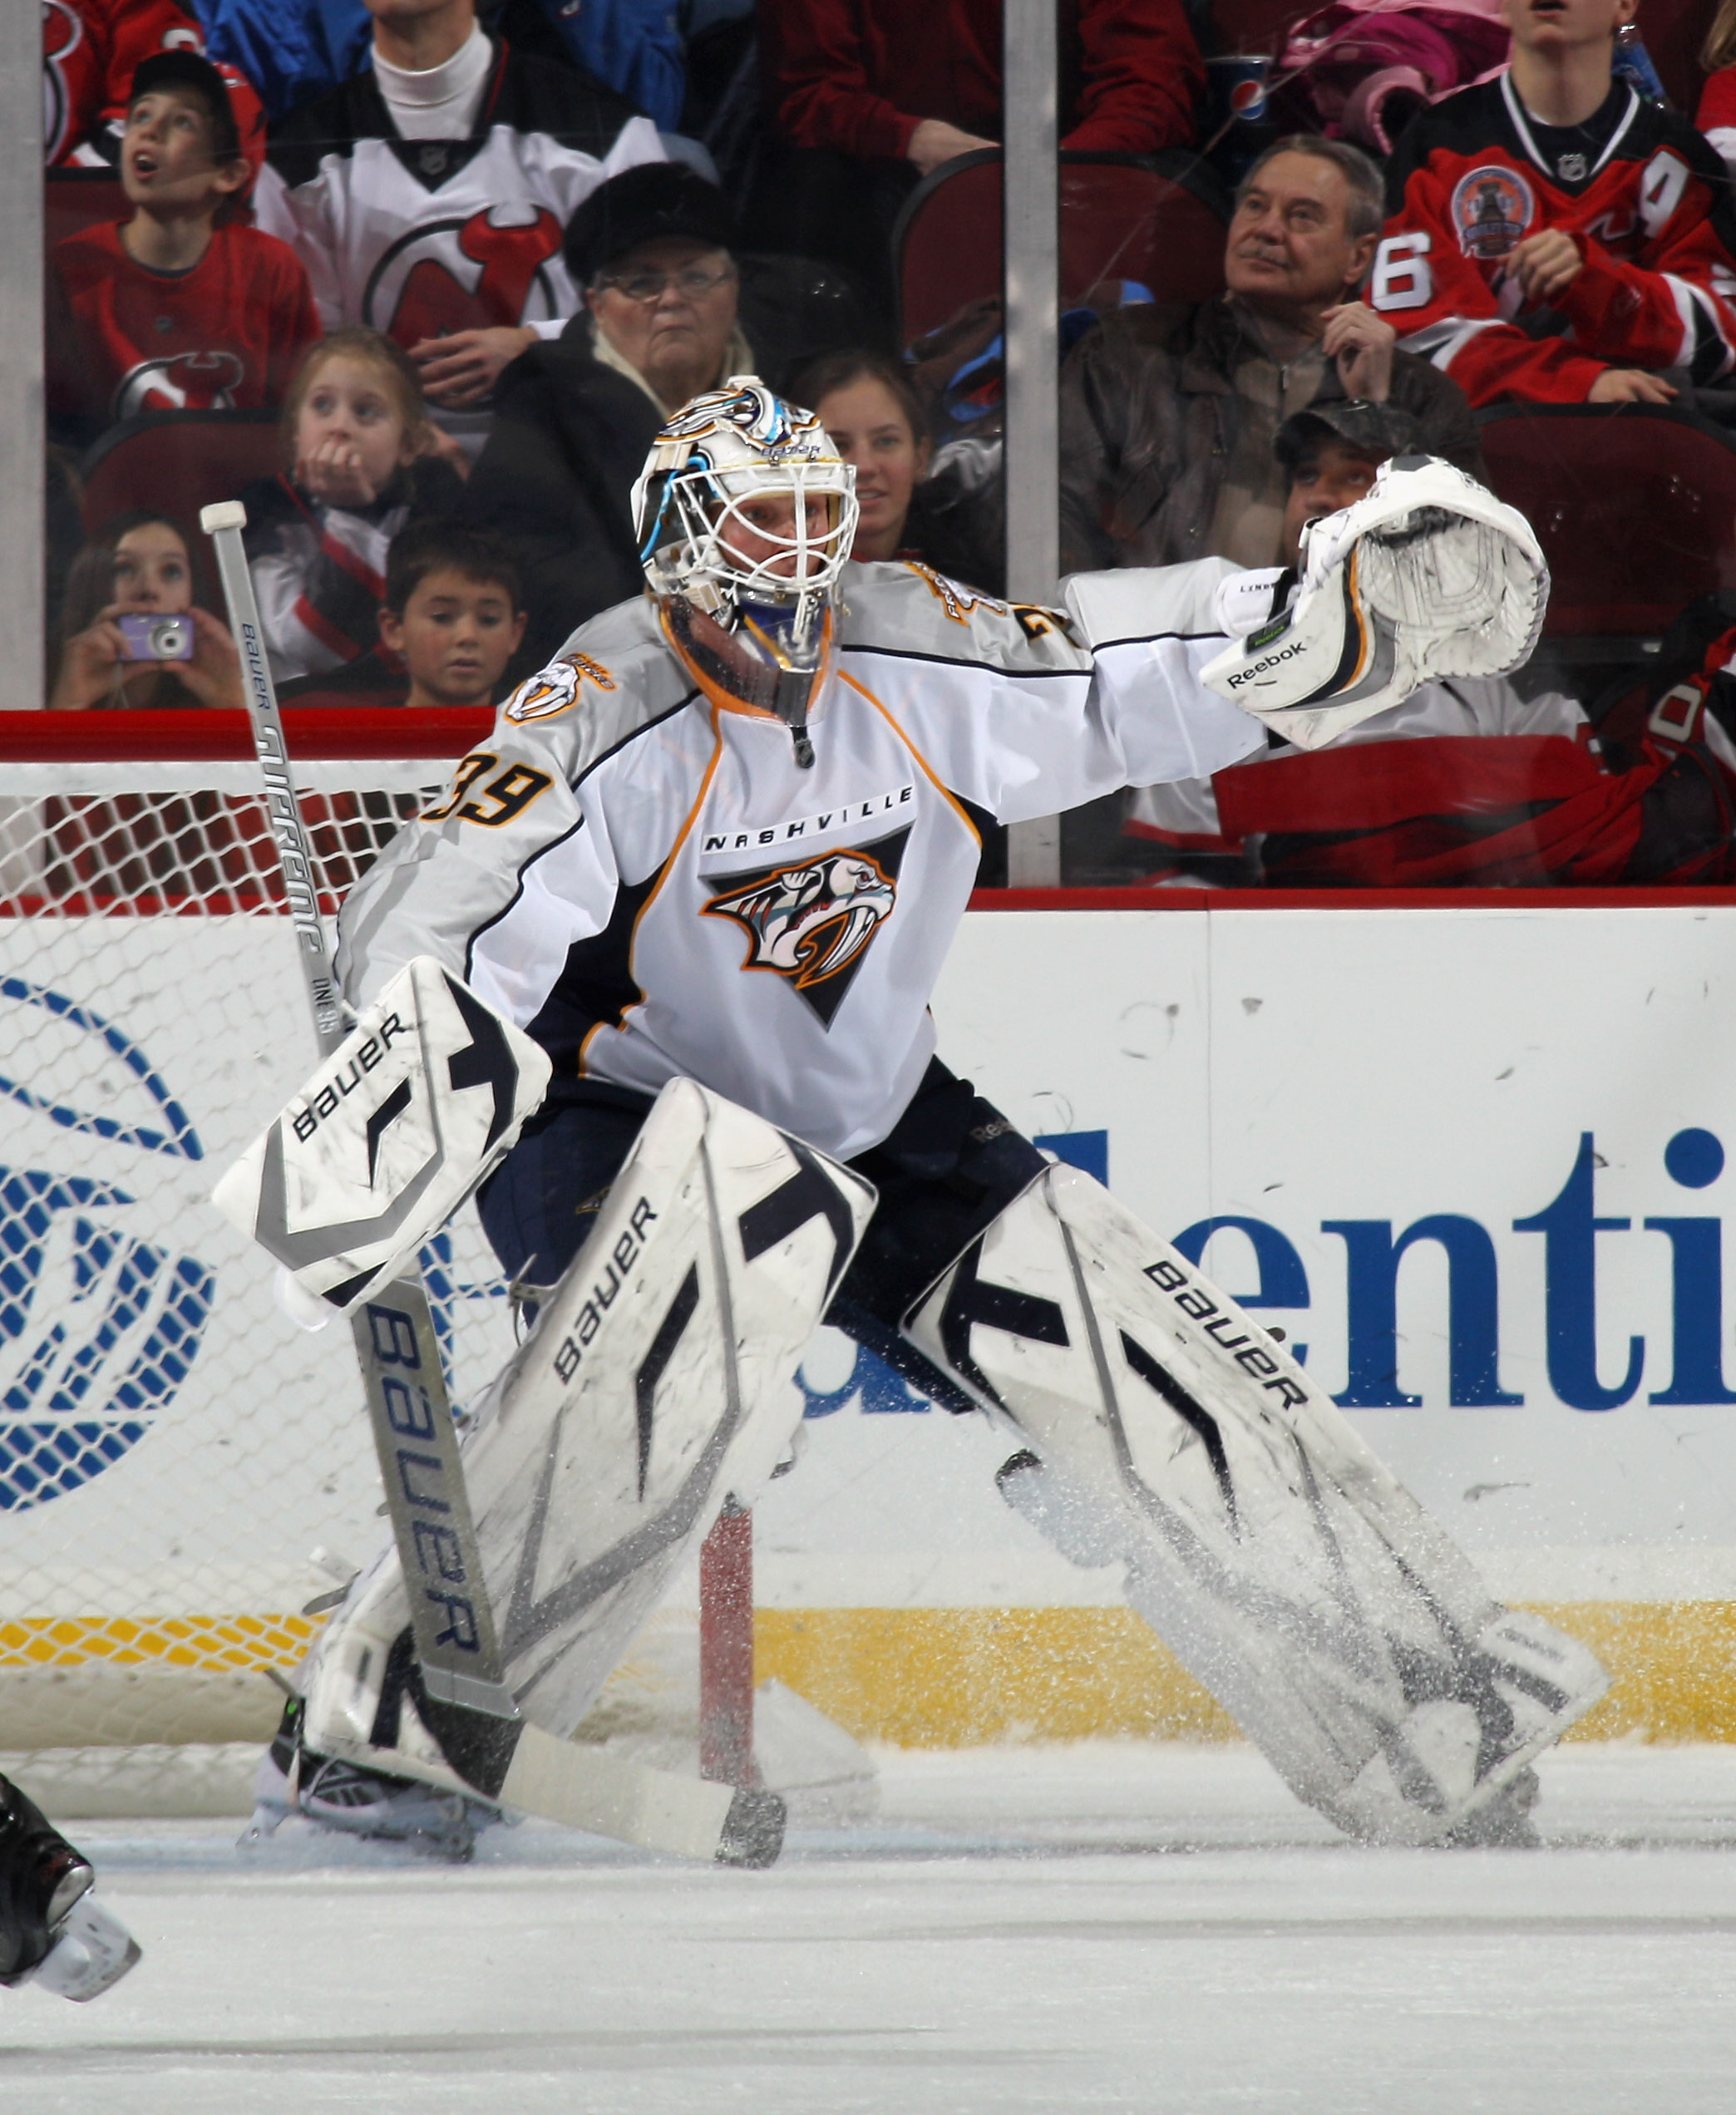 NEWARK, NJ - DECEMBER 17: Anders Lindback #39 of the Nashville Predators skates against the New Jersey Devils at the Prudential Center on December 17, 2010 in Newark, New Jersey.  (Photo by Bruce Bennett/Getty Images)